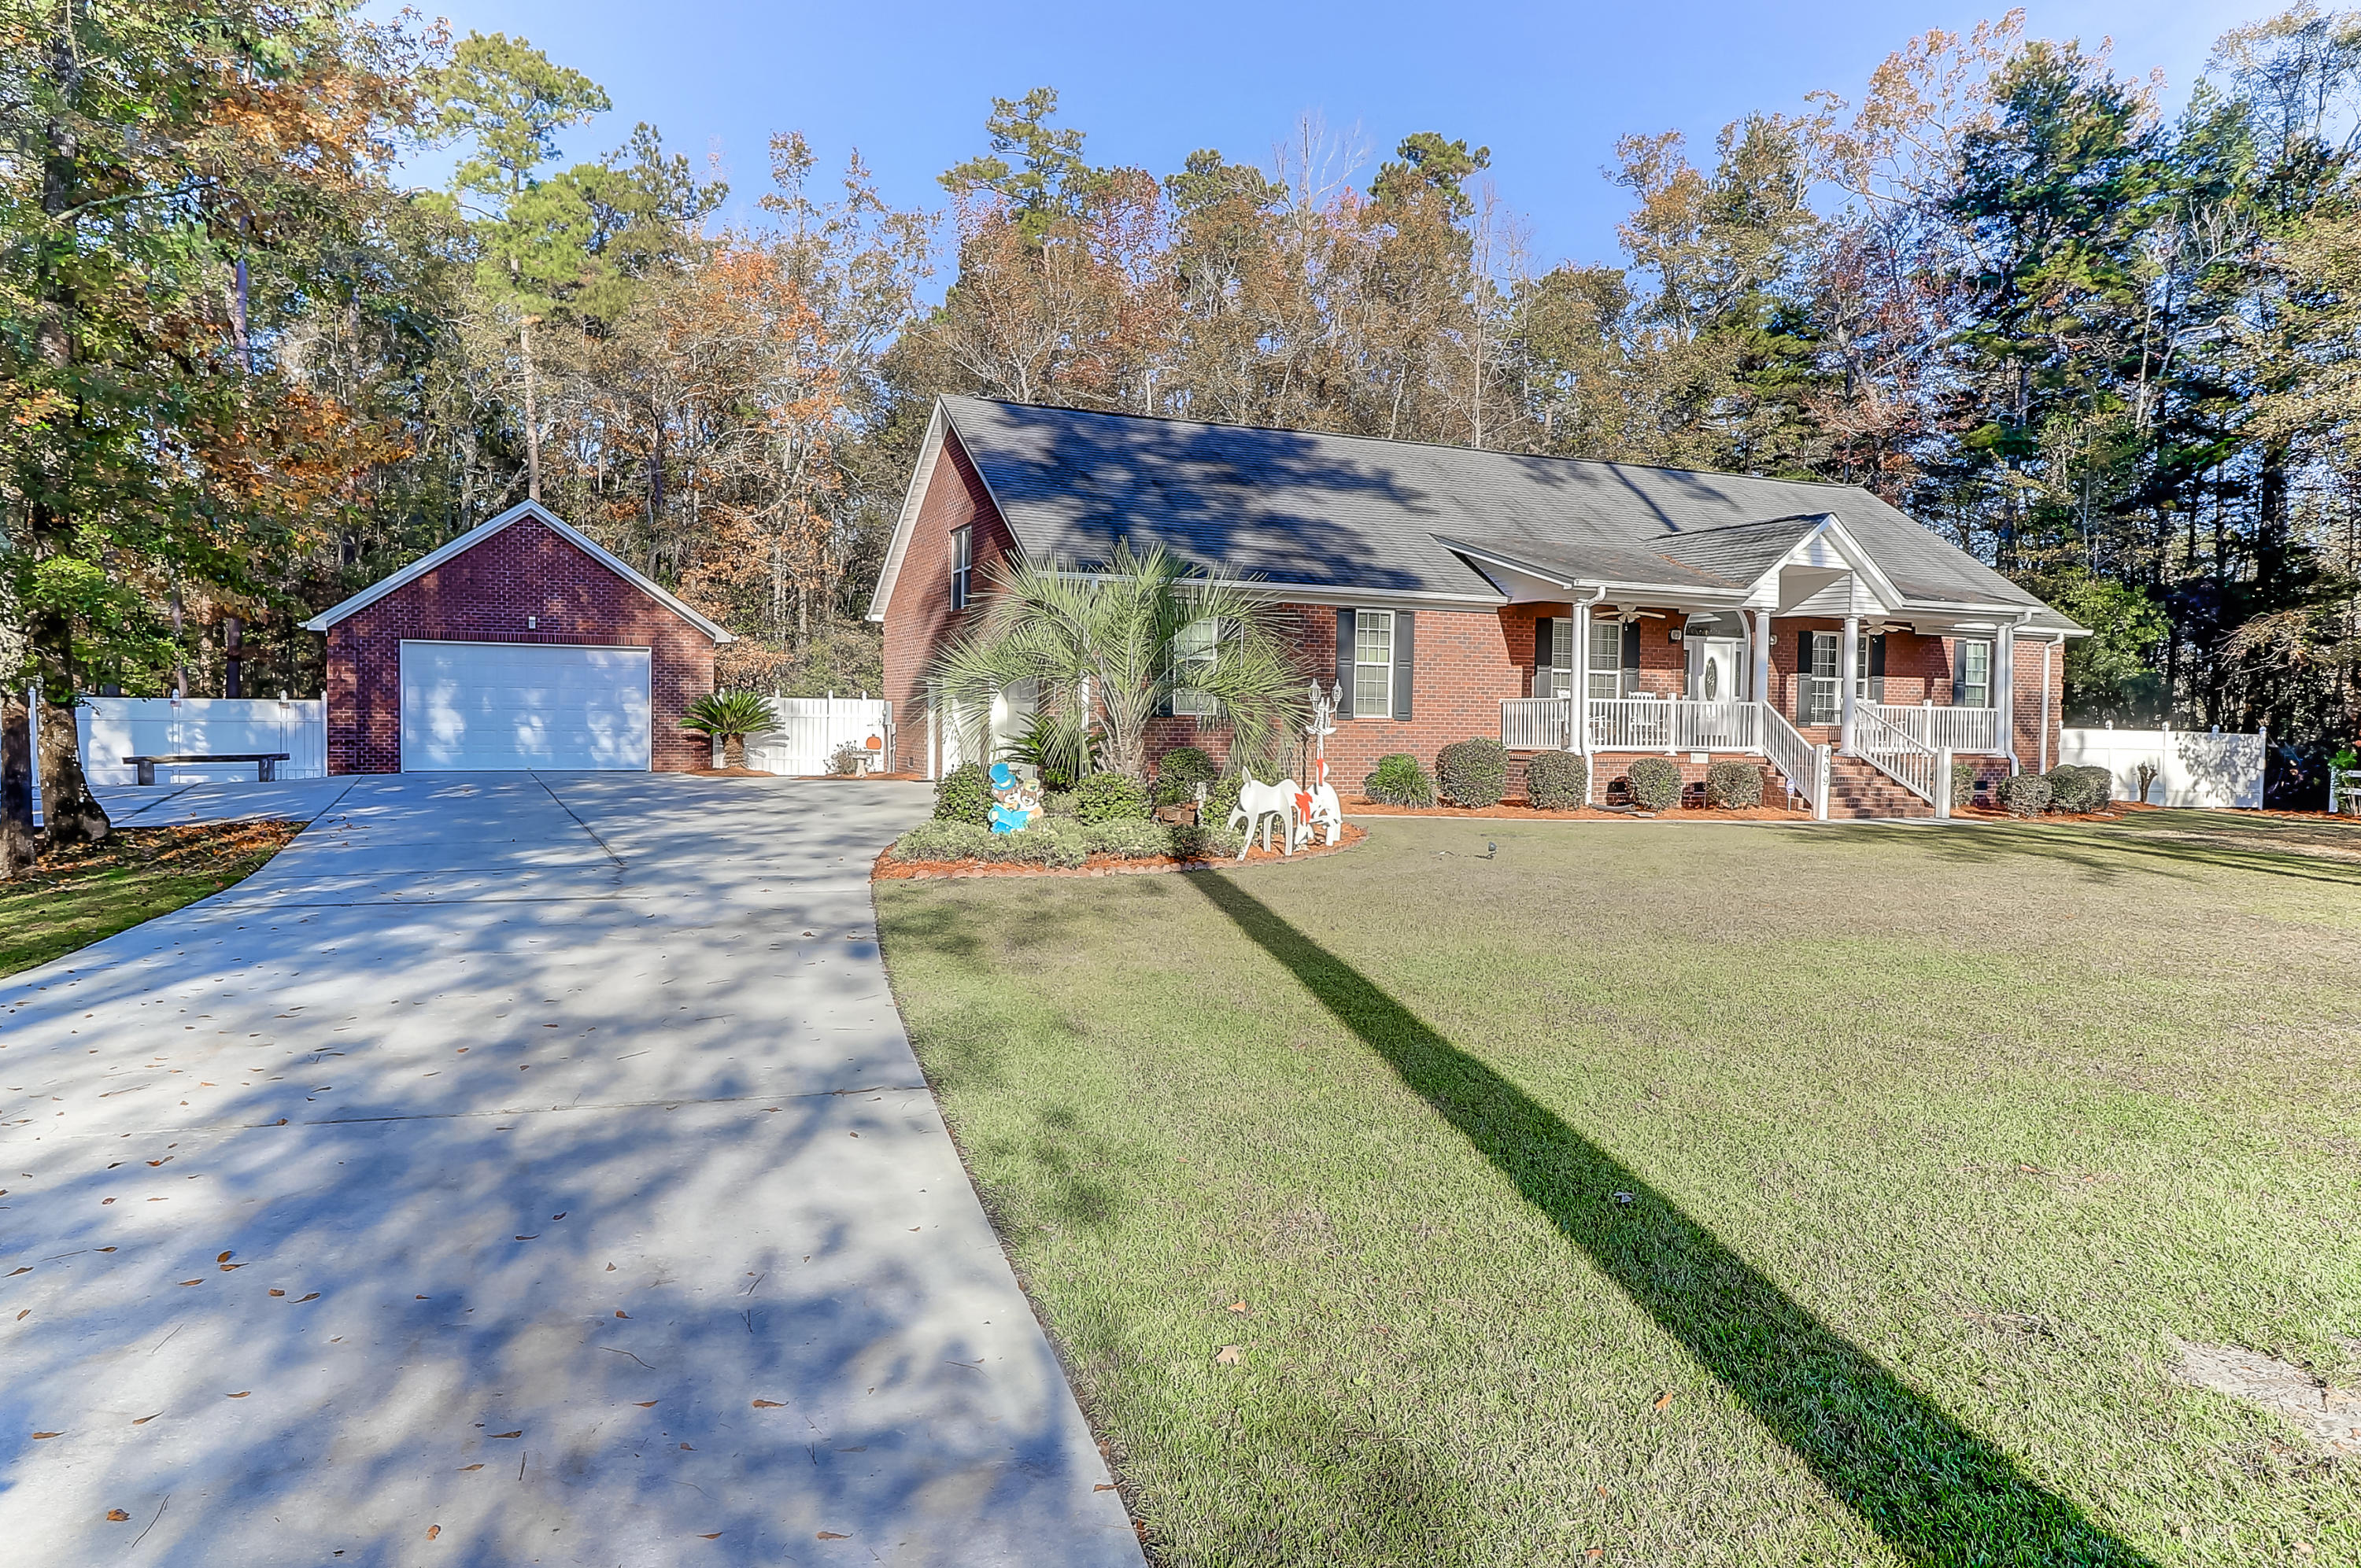 Photo of 409 Cypress Point Dr, Summerville, SC 29483